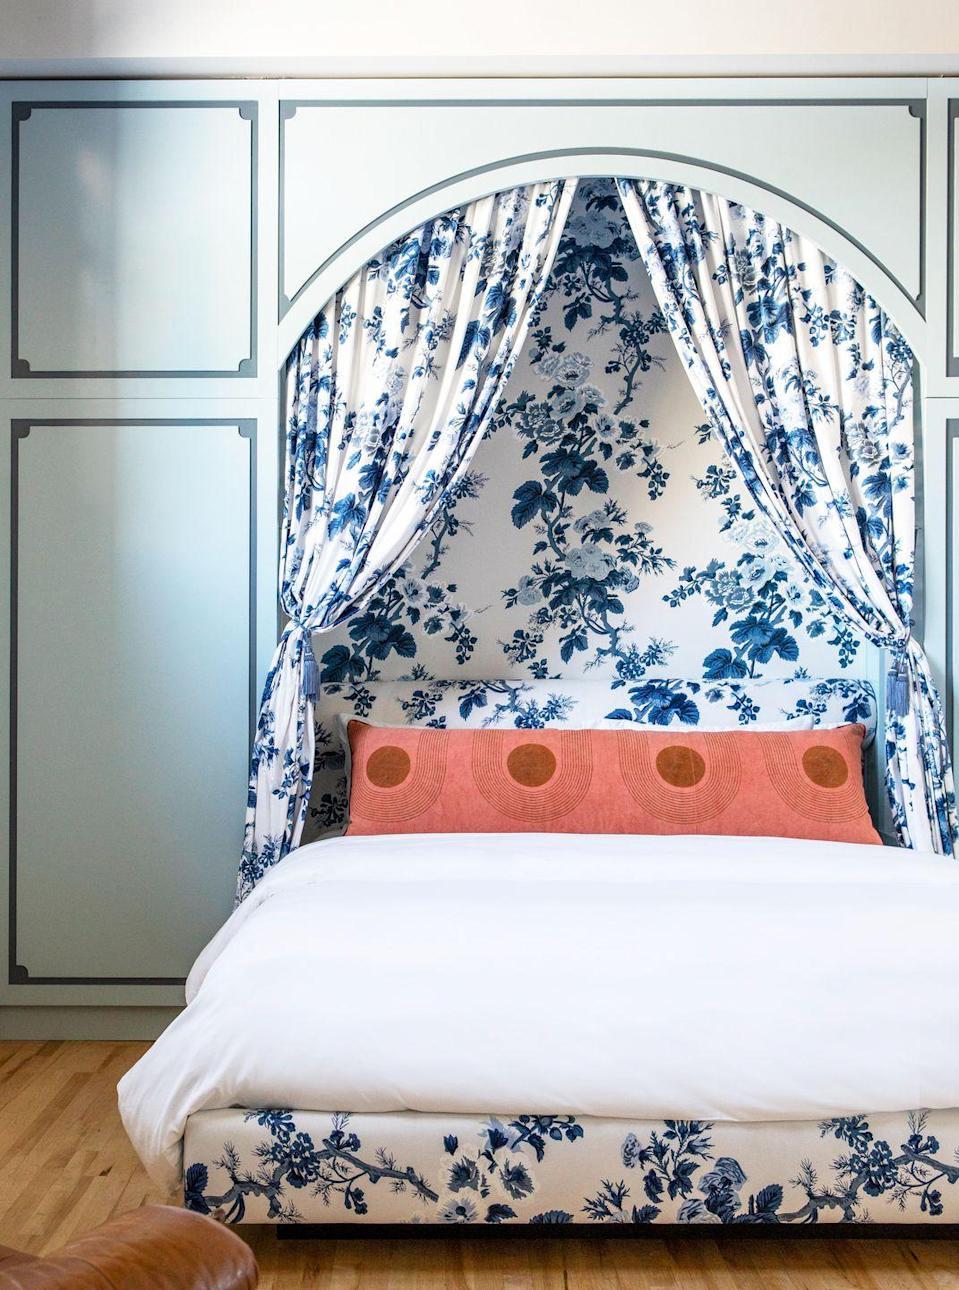 "<p>A <a href=""https://www.housebeautiful.com/room-decorating/bedrooms/g717/headboard-designs/"" rel=""nofollow noopener"" target=""_blank"" data-ylk=""slk:headboard"" class=""link rapid-noclick-resp"">headboard</a> is cool, but this is your main bedroom, after all, so go all out and add a footboard, canopy, and statement wall, too. A bold pattern and color make any room pop. Take note of this edgy yet classic space by <a href=""https://www.etcforshort.com/"" rel=""nofollow noopener"" target=""_blank"" data-ylk=""slk:ETC.etera"" class=""link rapid-noclick-resp"">ETC.etera</a> and mix toile fabric with something geometric and mod. </p>"